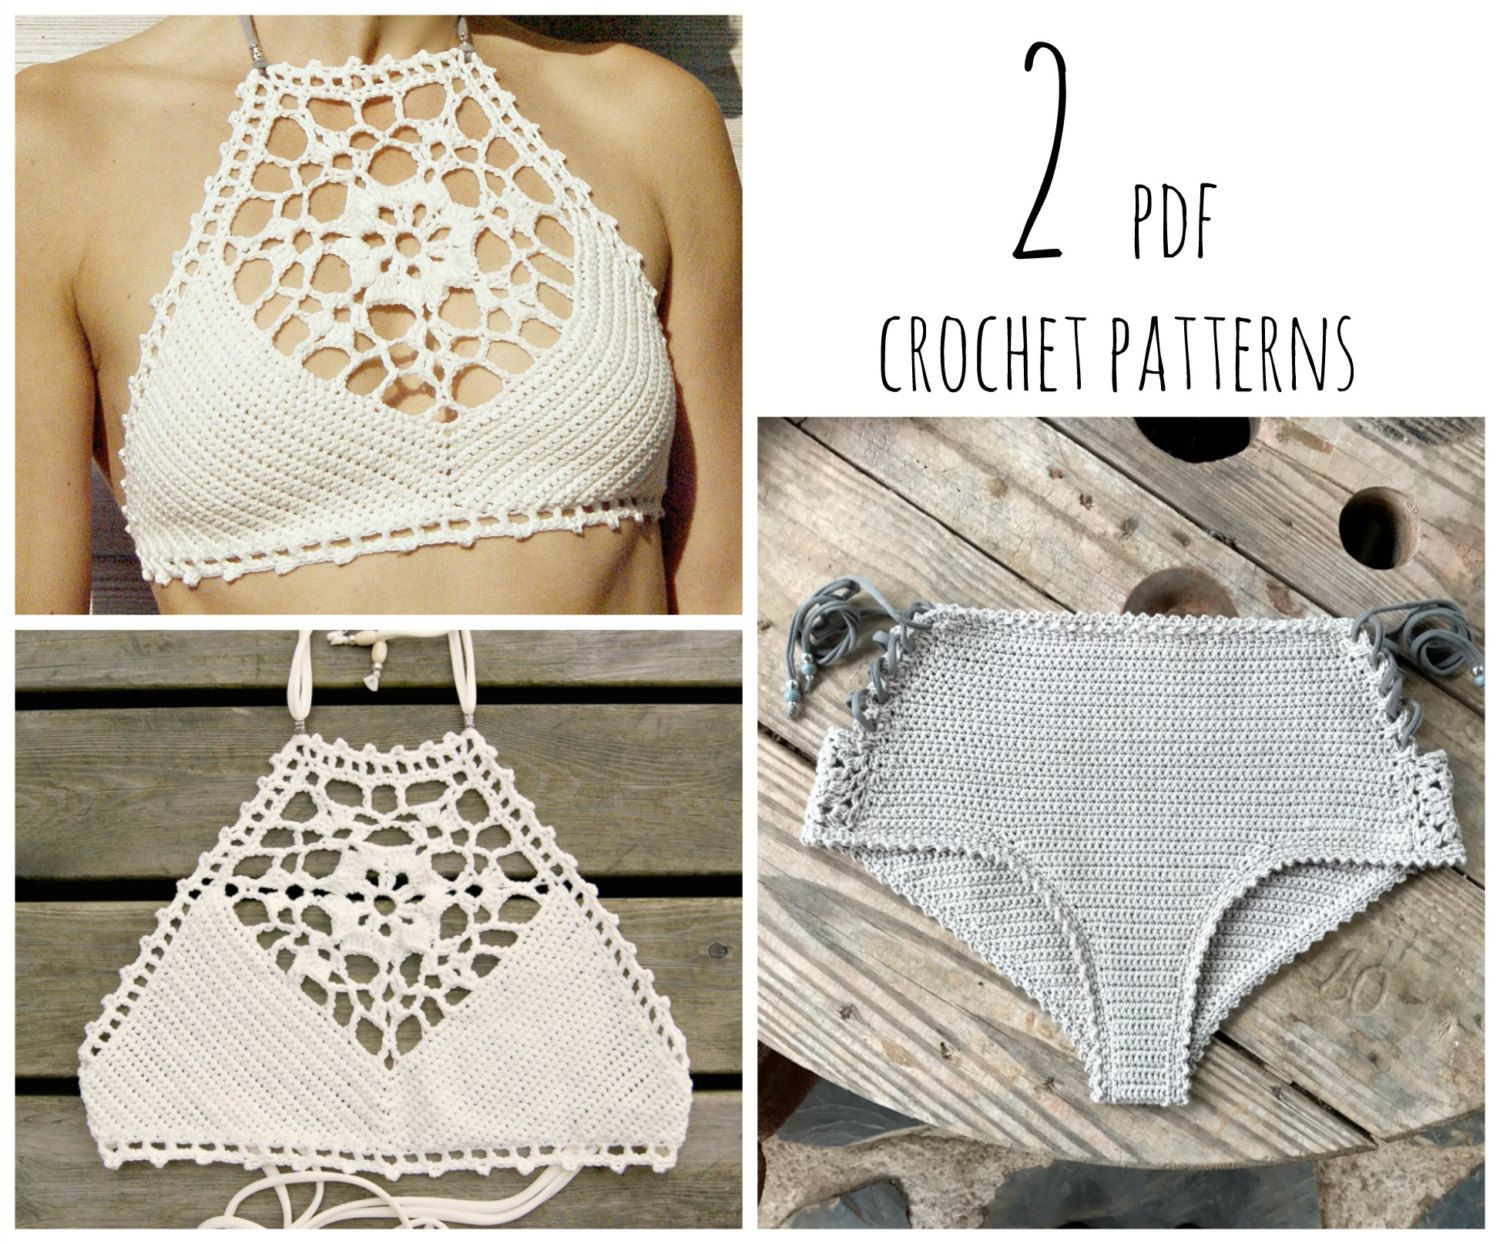 PDF-files for 2 Crochet PATTERNS: Venus crop Top and Aliyah Crochet ...